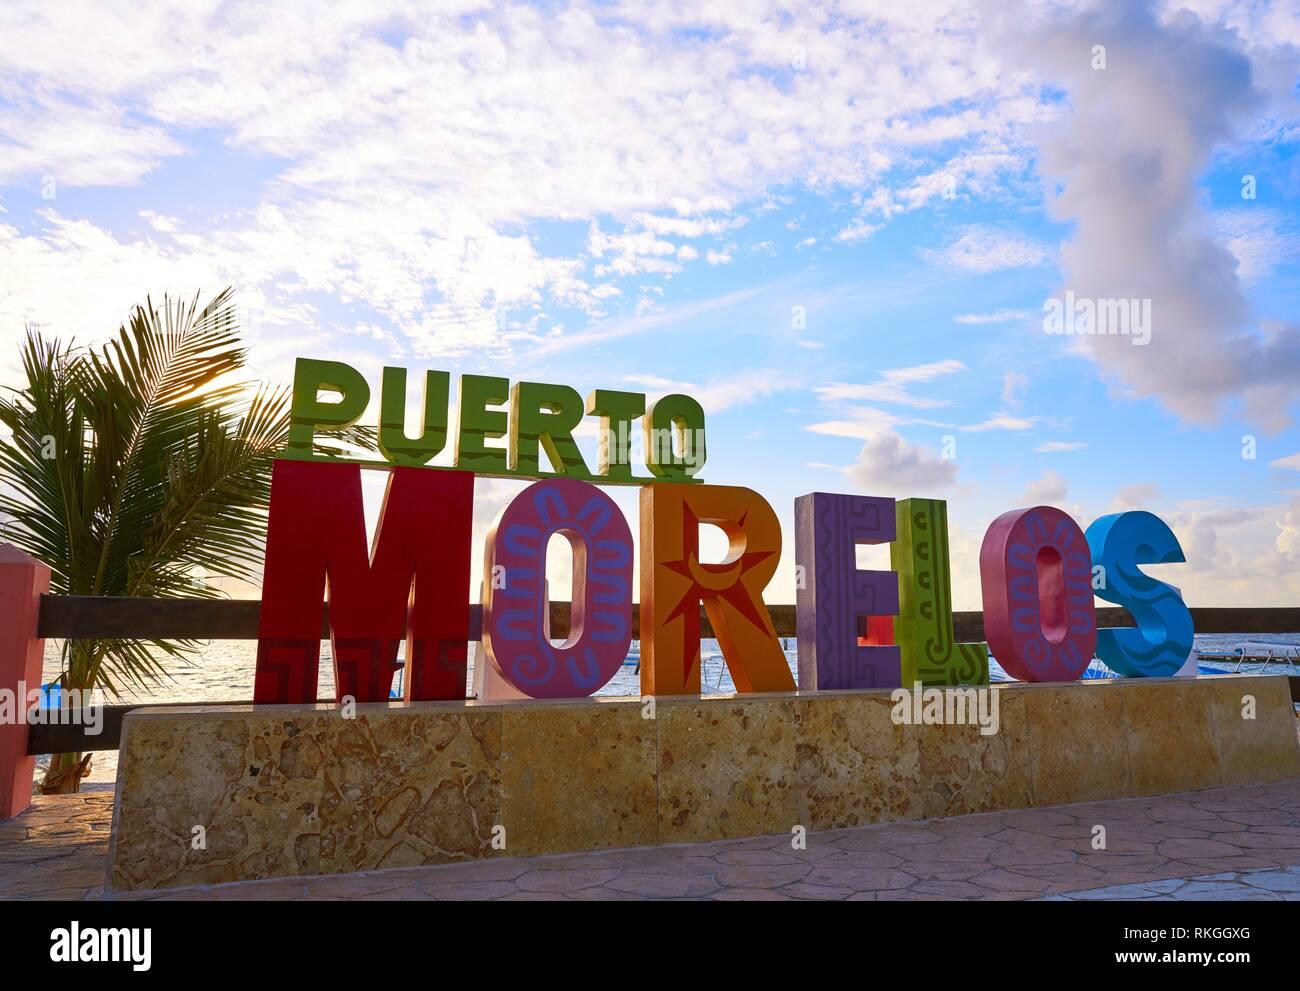 Puerto Morelos word sign in sunrise Mayan Riviera Maya of Mexico. - Stock Image